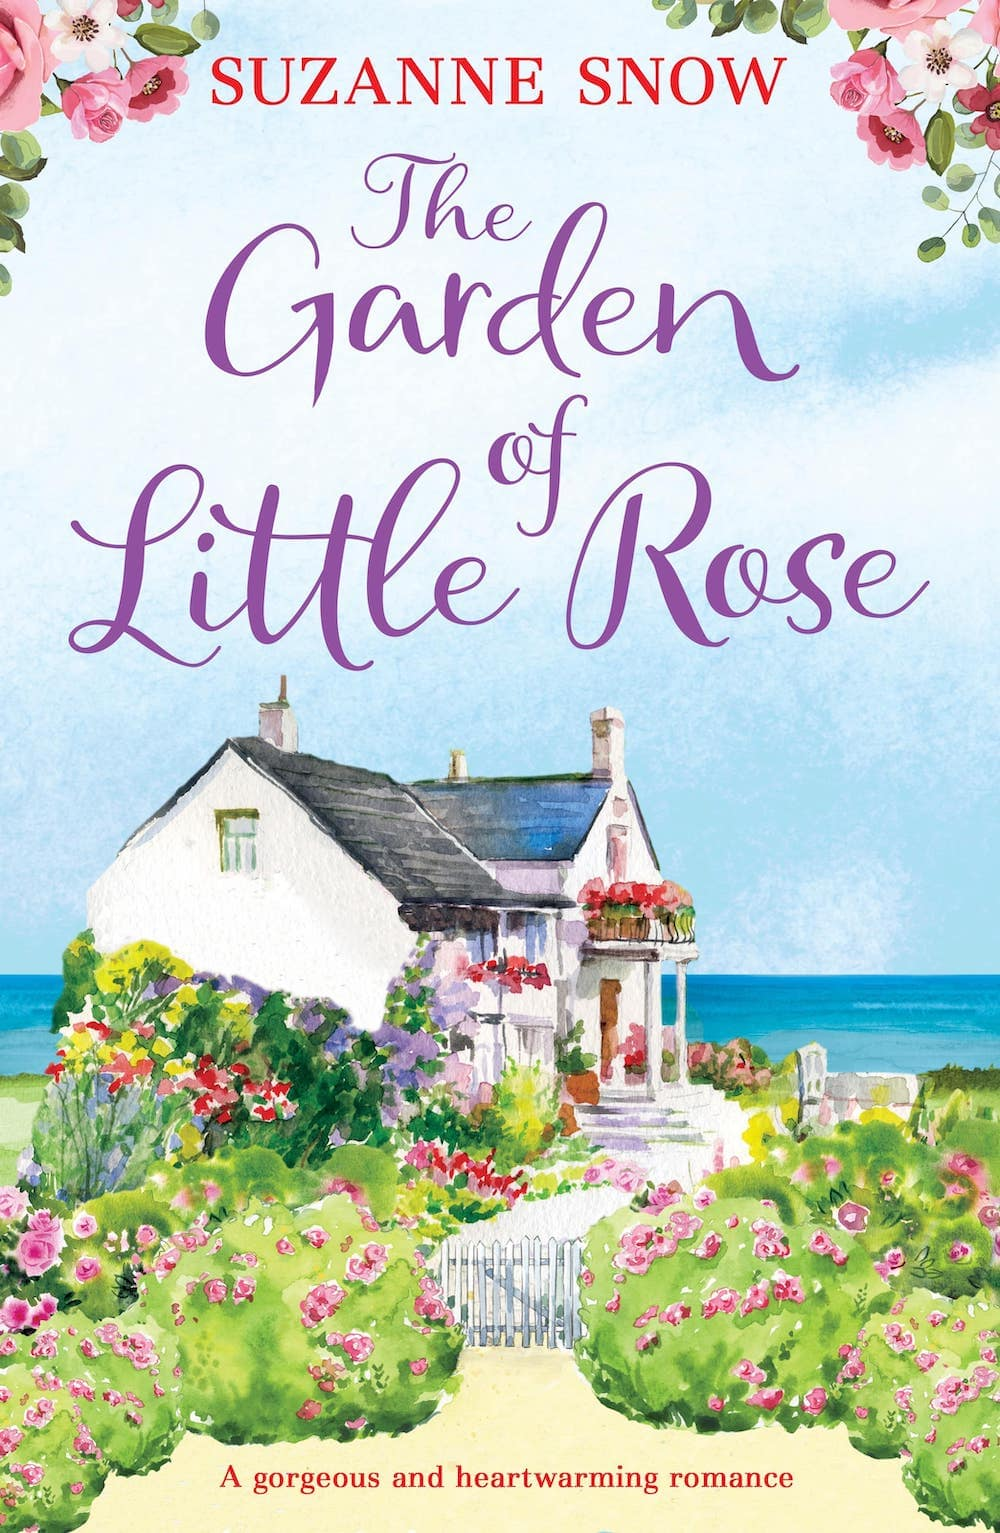 romantic books, romantic fiction, The Garden of Little Rose, suzanne snow